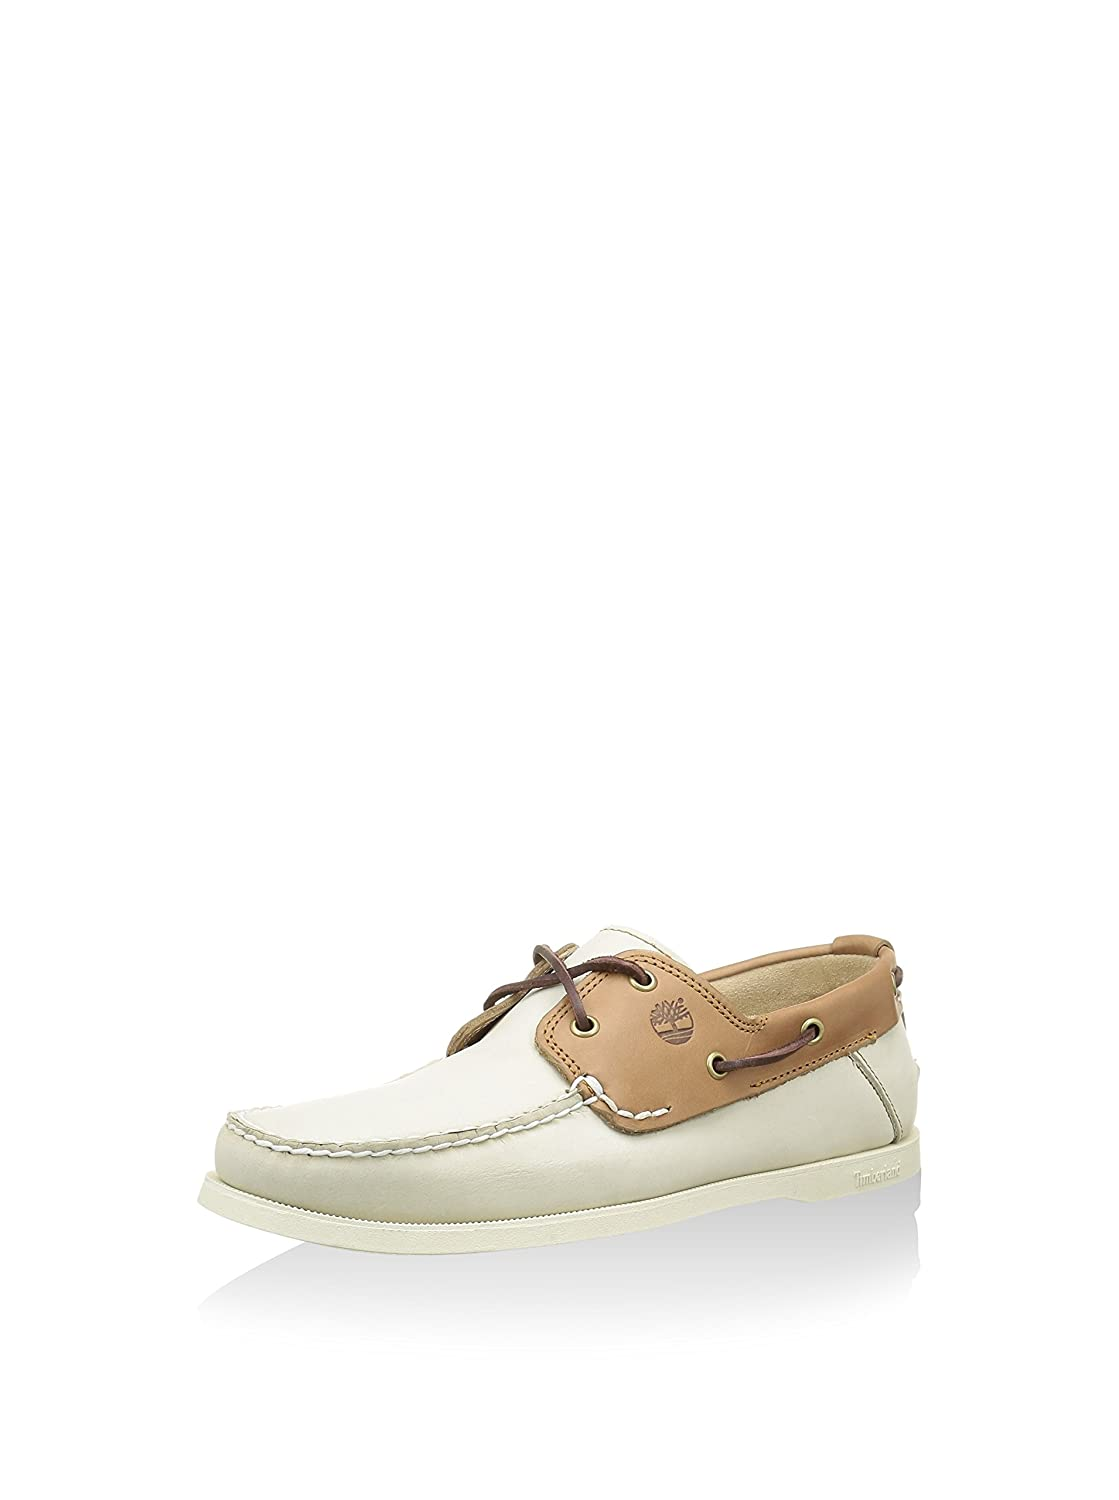 Timberland Heritage CW Boat 2 E Oyster, Chaussures de Voile